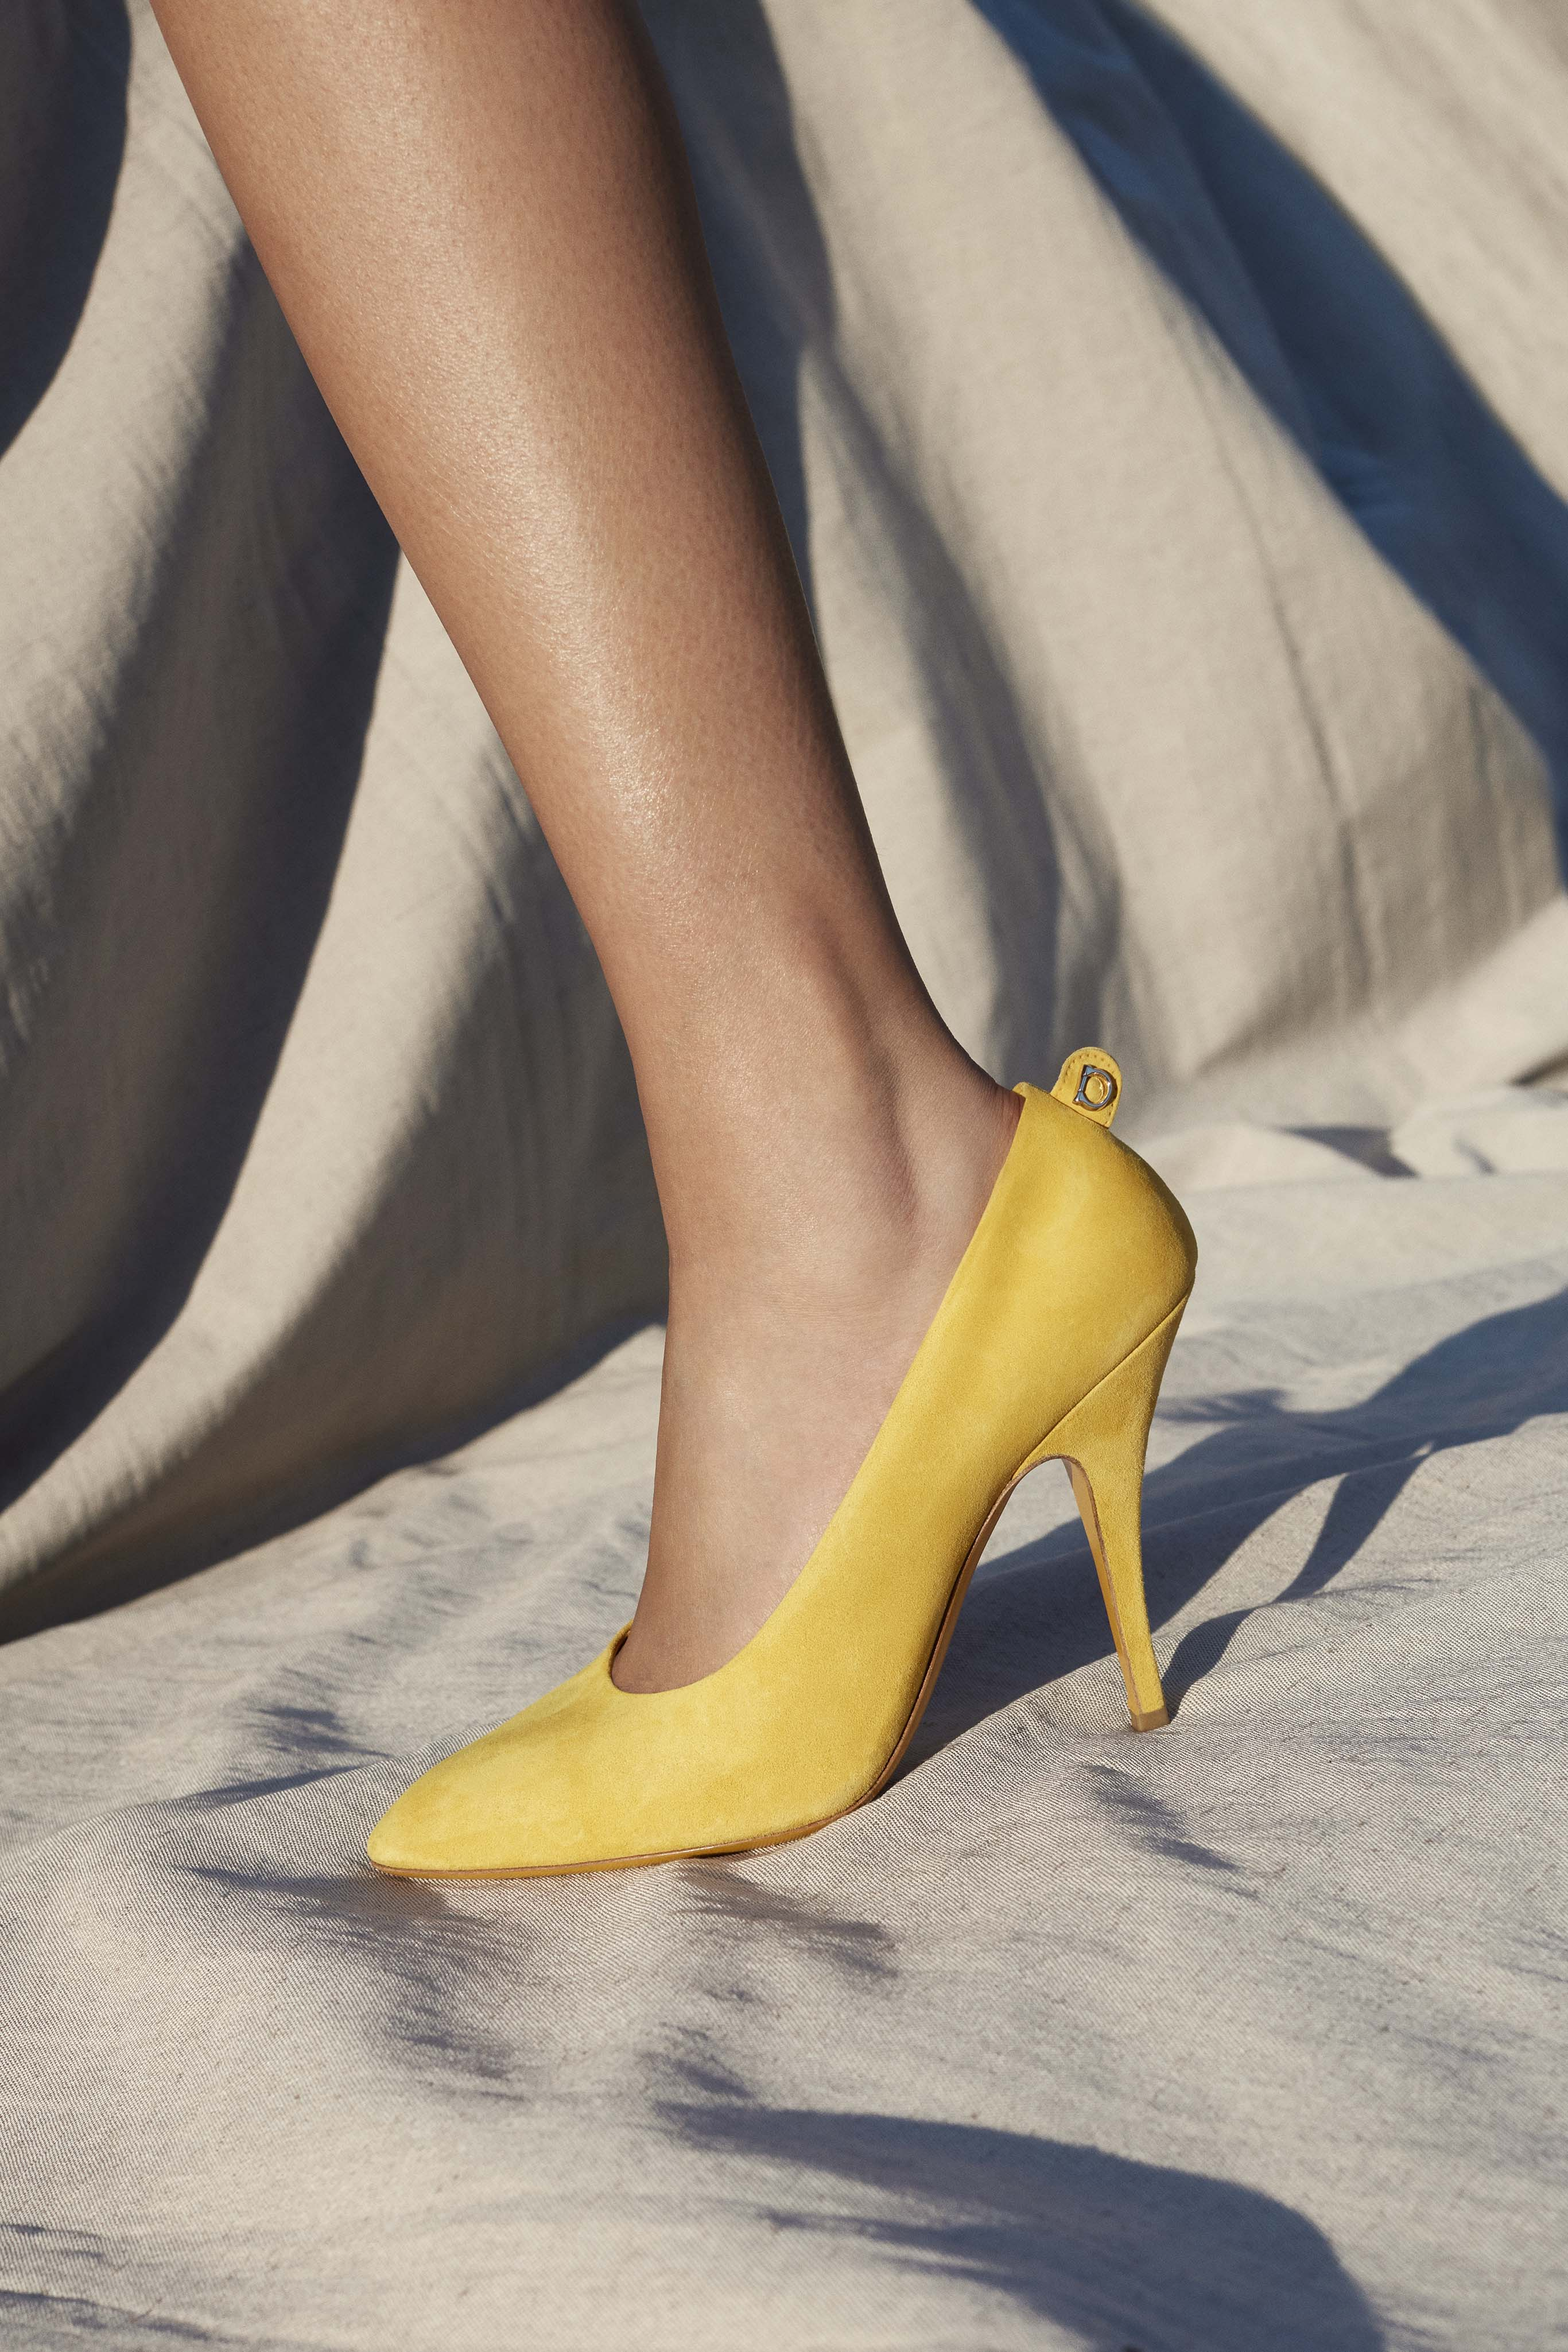 Salvatore Ferragamo Plain Pump in Sunshine Yellow